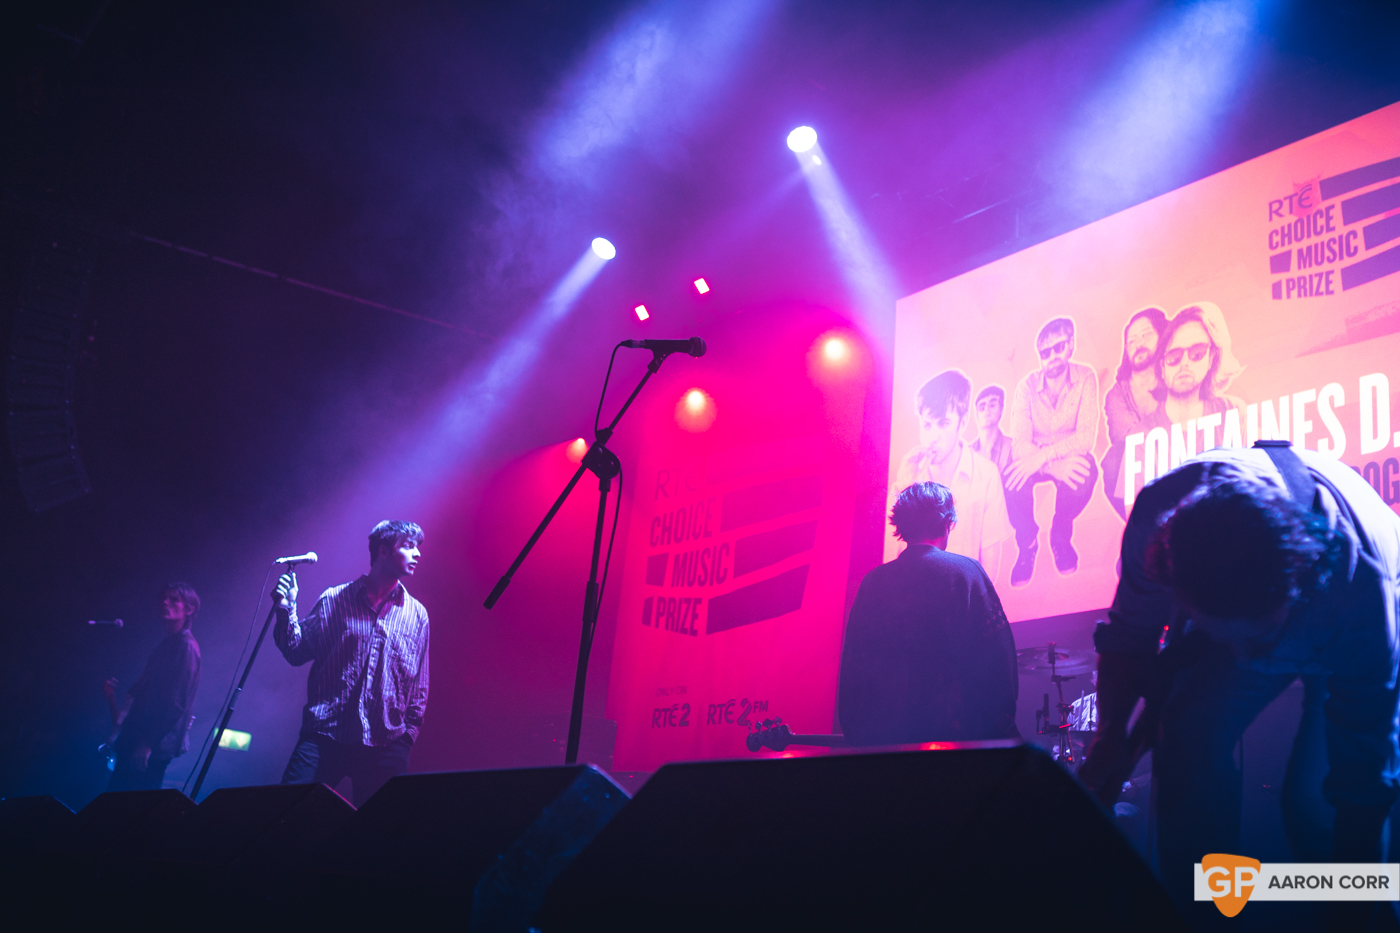 Fontaines DC at Choice Music Prize 2020 in Vicar Street, Dublin on 05-Mar-20 by Aaron Corr-2673